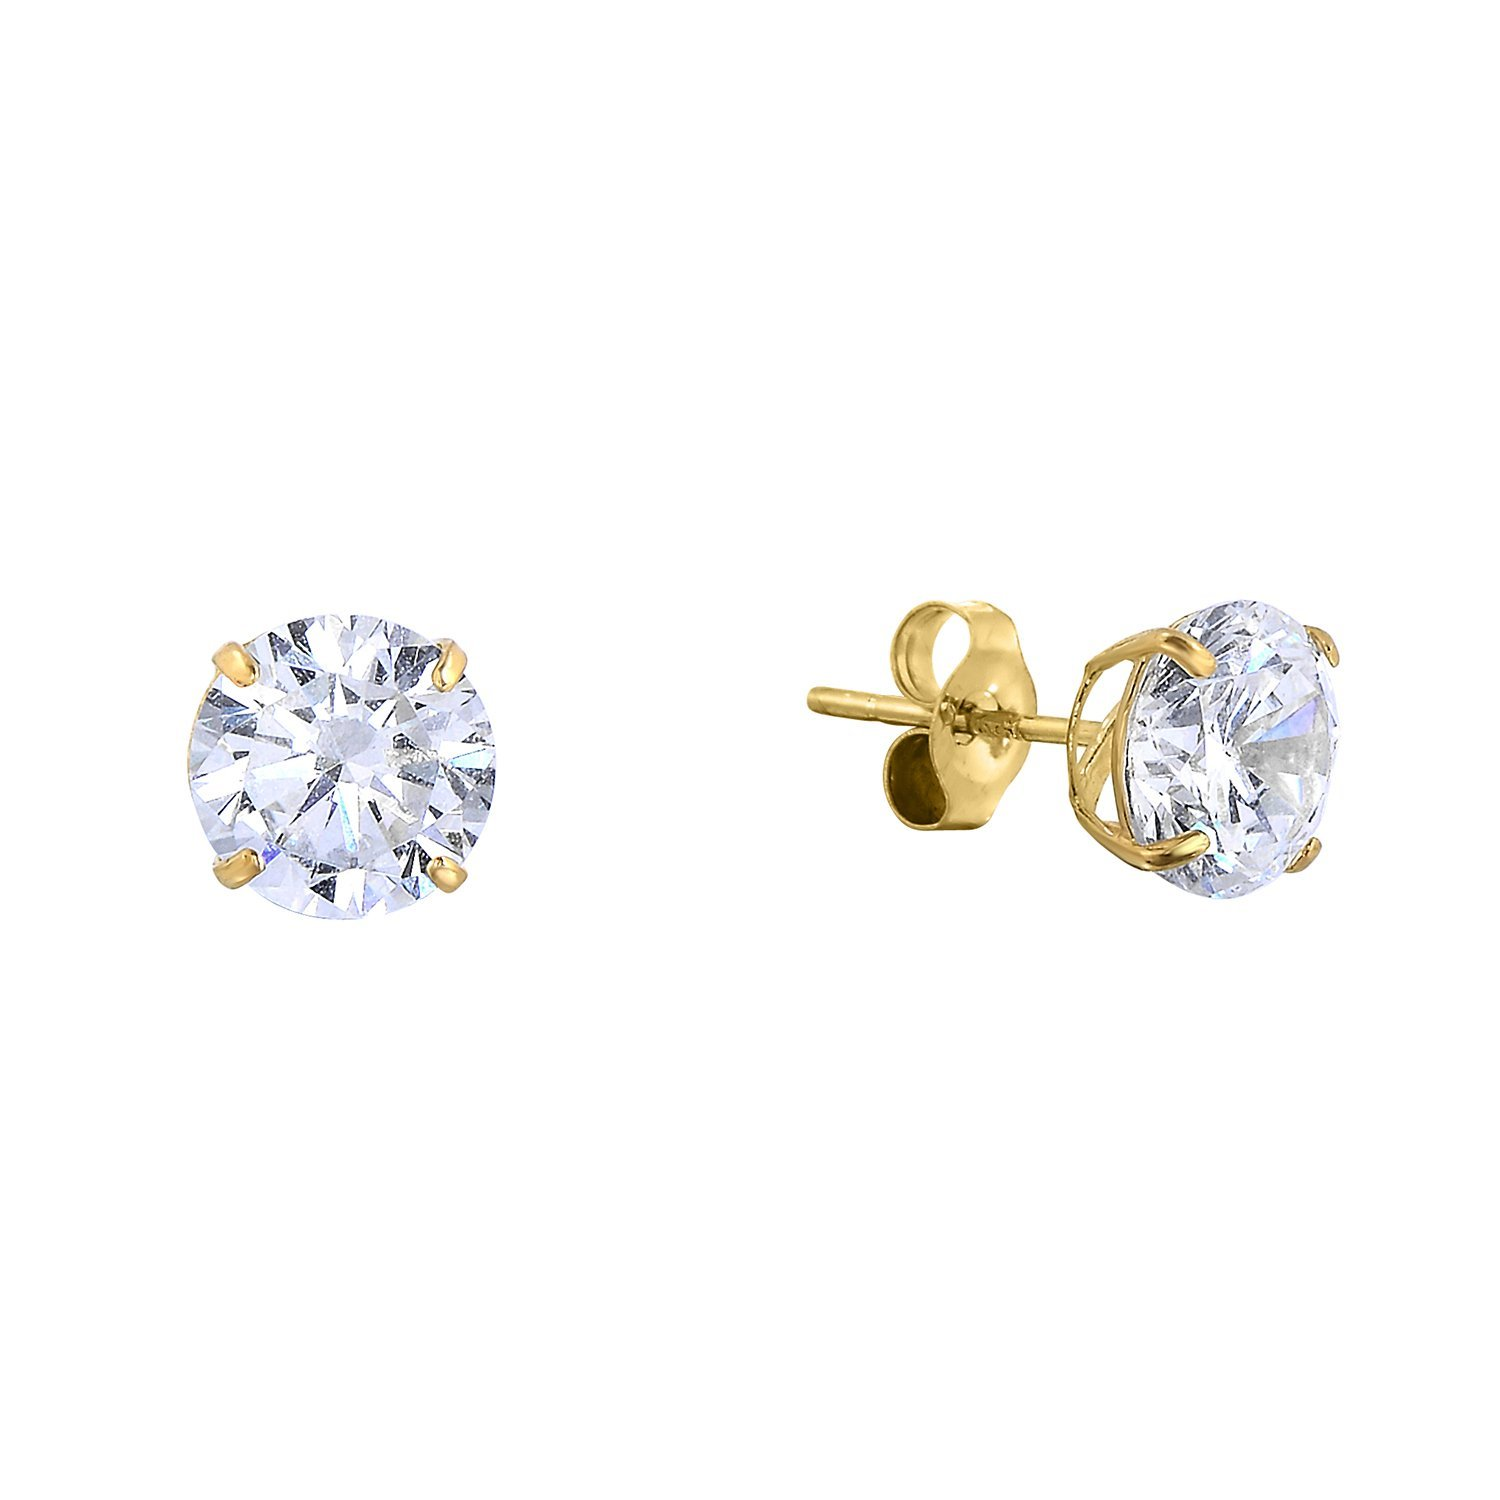 14k Yellow Gold Solitaire Round Cubic Zirconia CZ Stud Earrings with Gold butterfly Pushbacks (5mm) by Tilo Jewelry